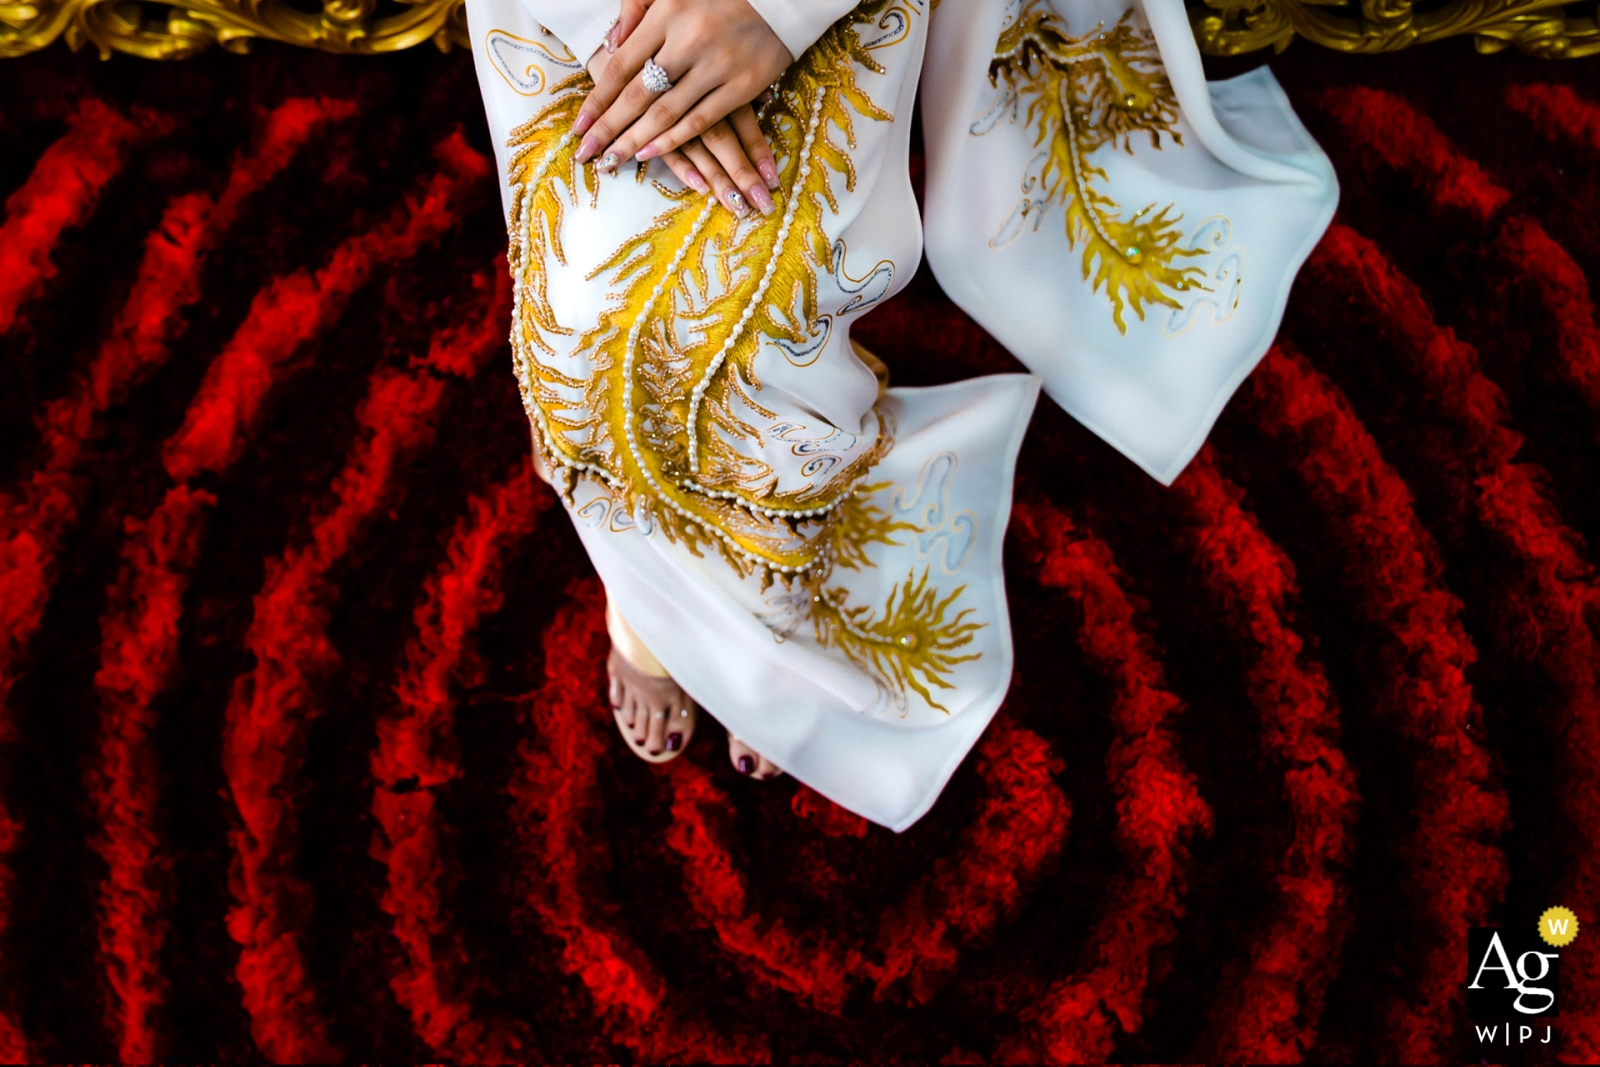 Vietnam HCMC wedding day photography | Detail Image of her hands dress and feet